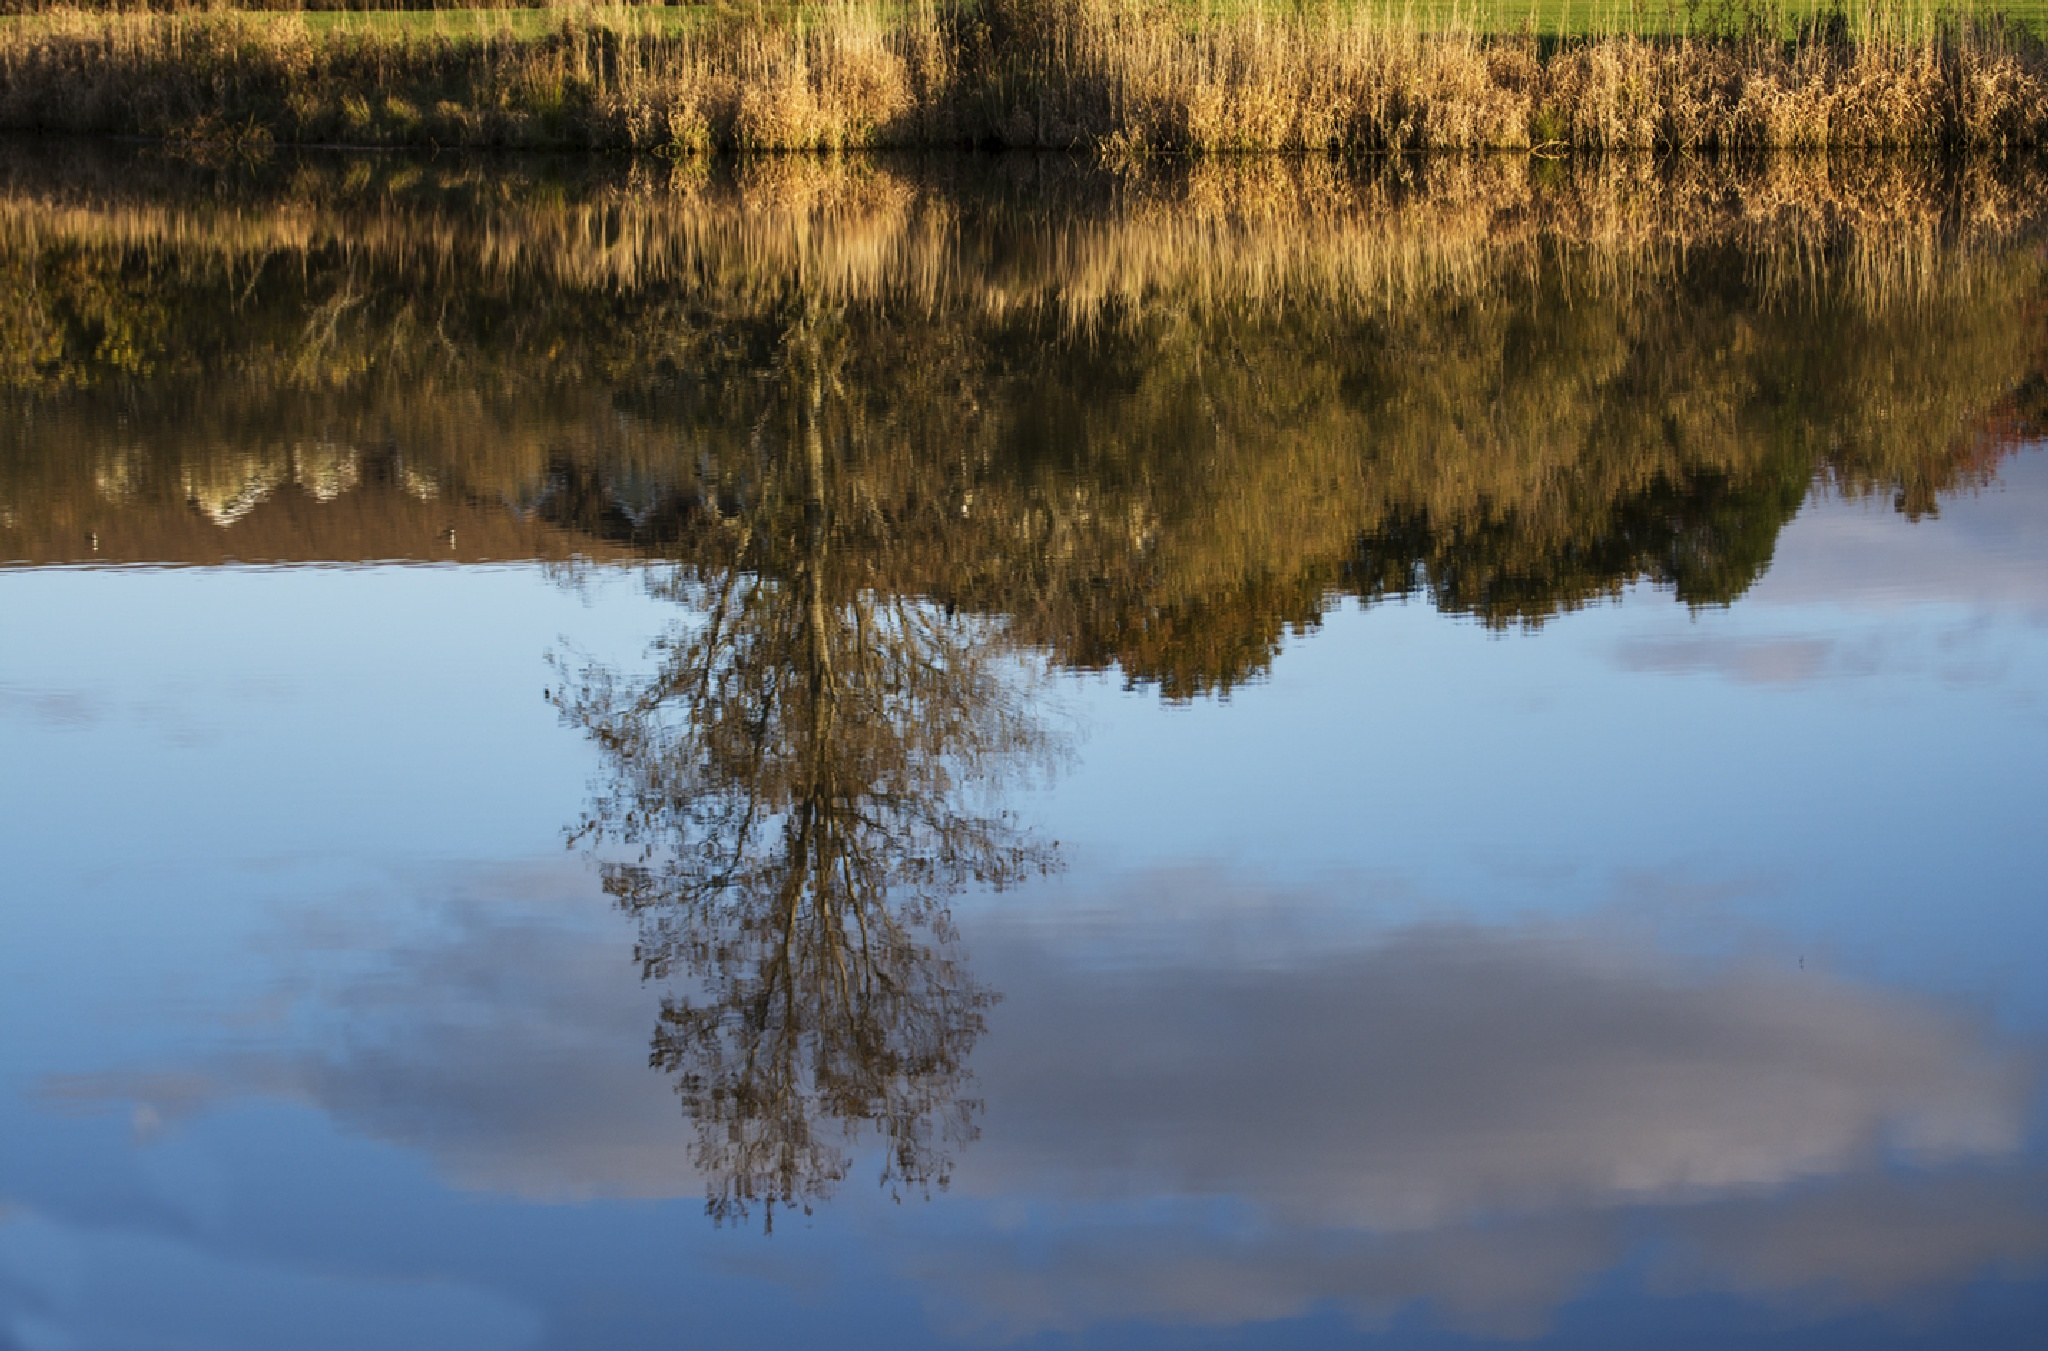 Reflections in the Pond by Wayne L. Talbot